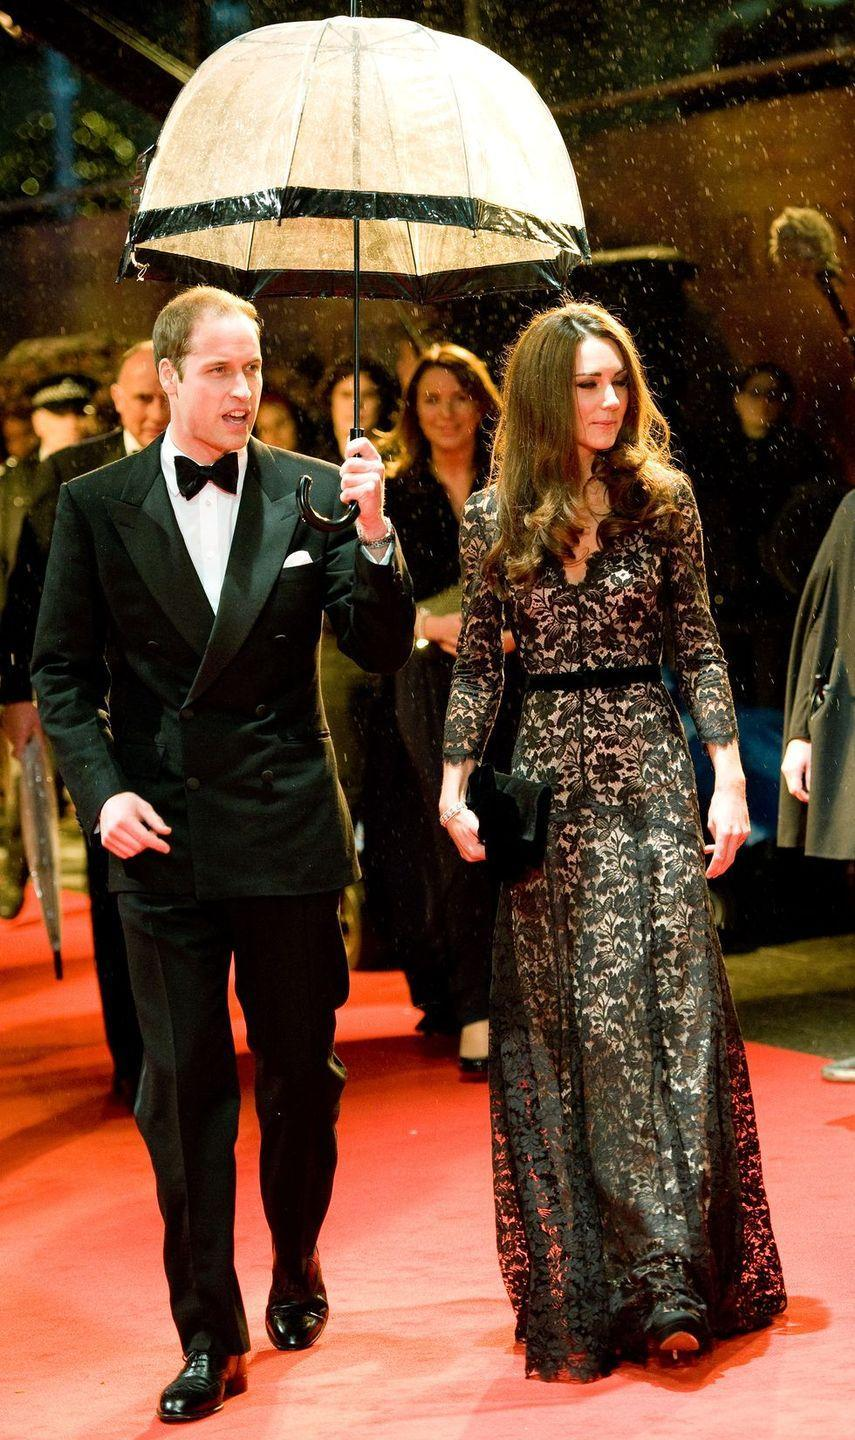 <p>This bubble umbrella was not sufficient to protect both the Duke and Duchess during the U.K. premiere of <em>War Horse.</em><br></p>